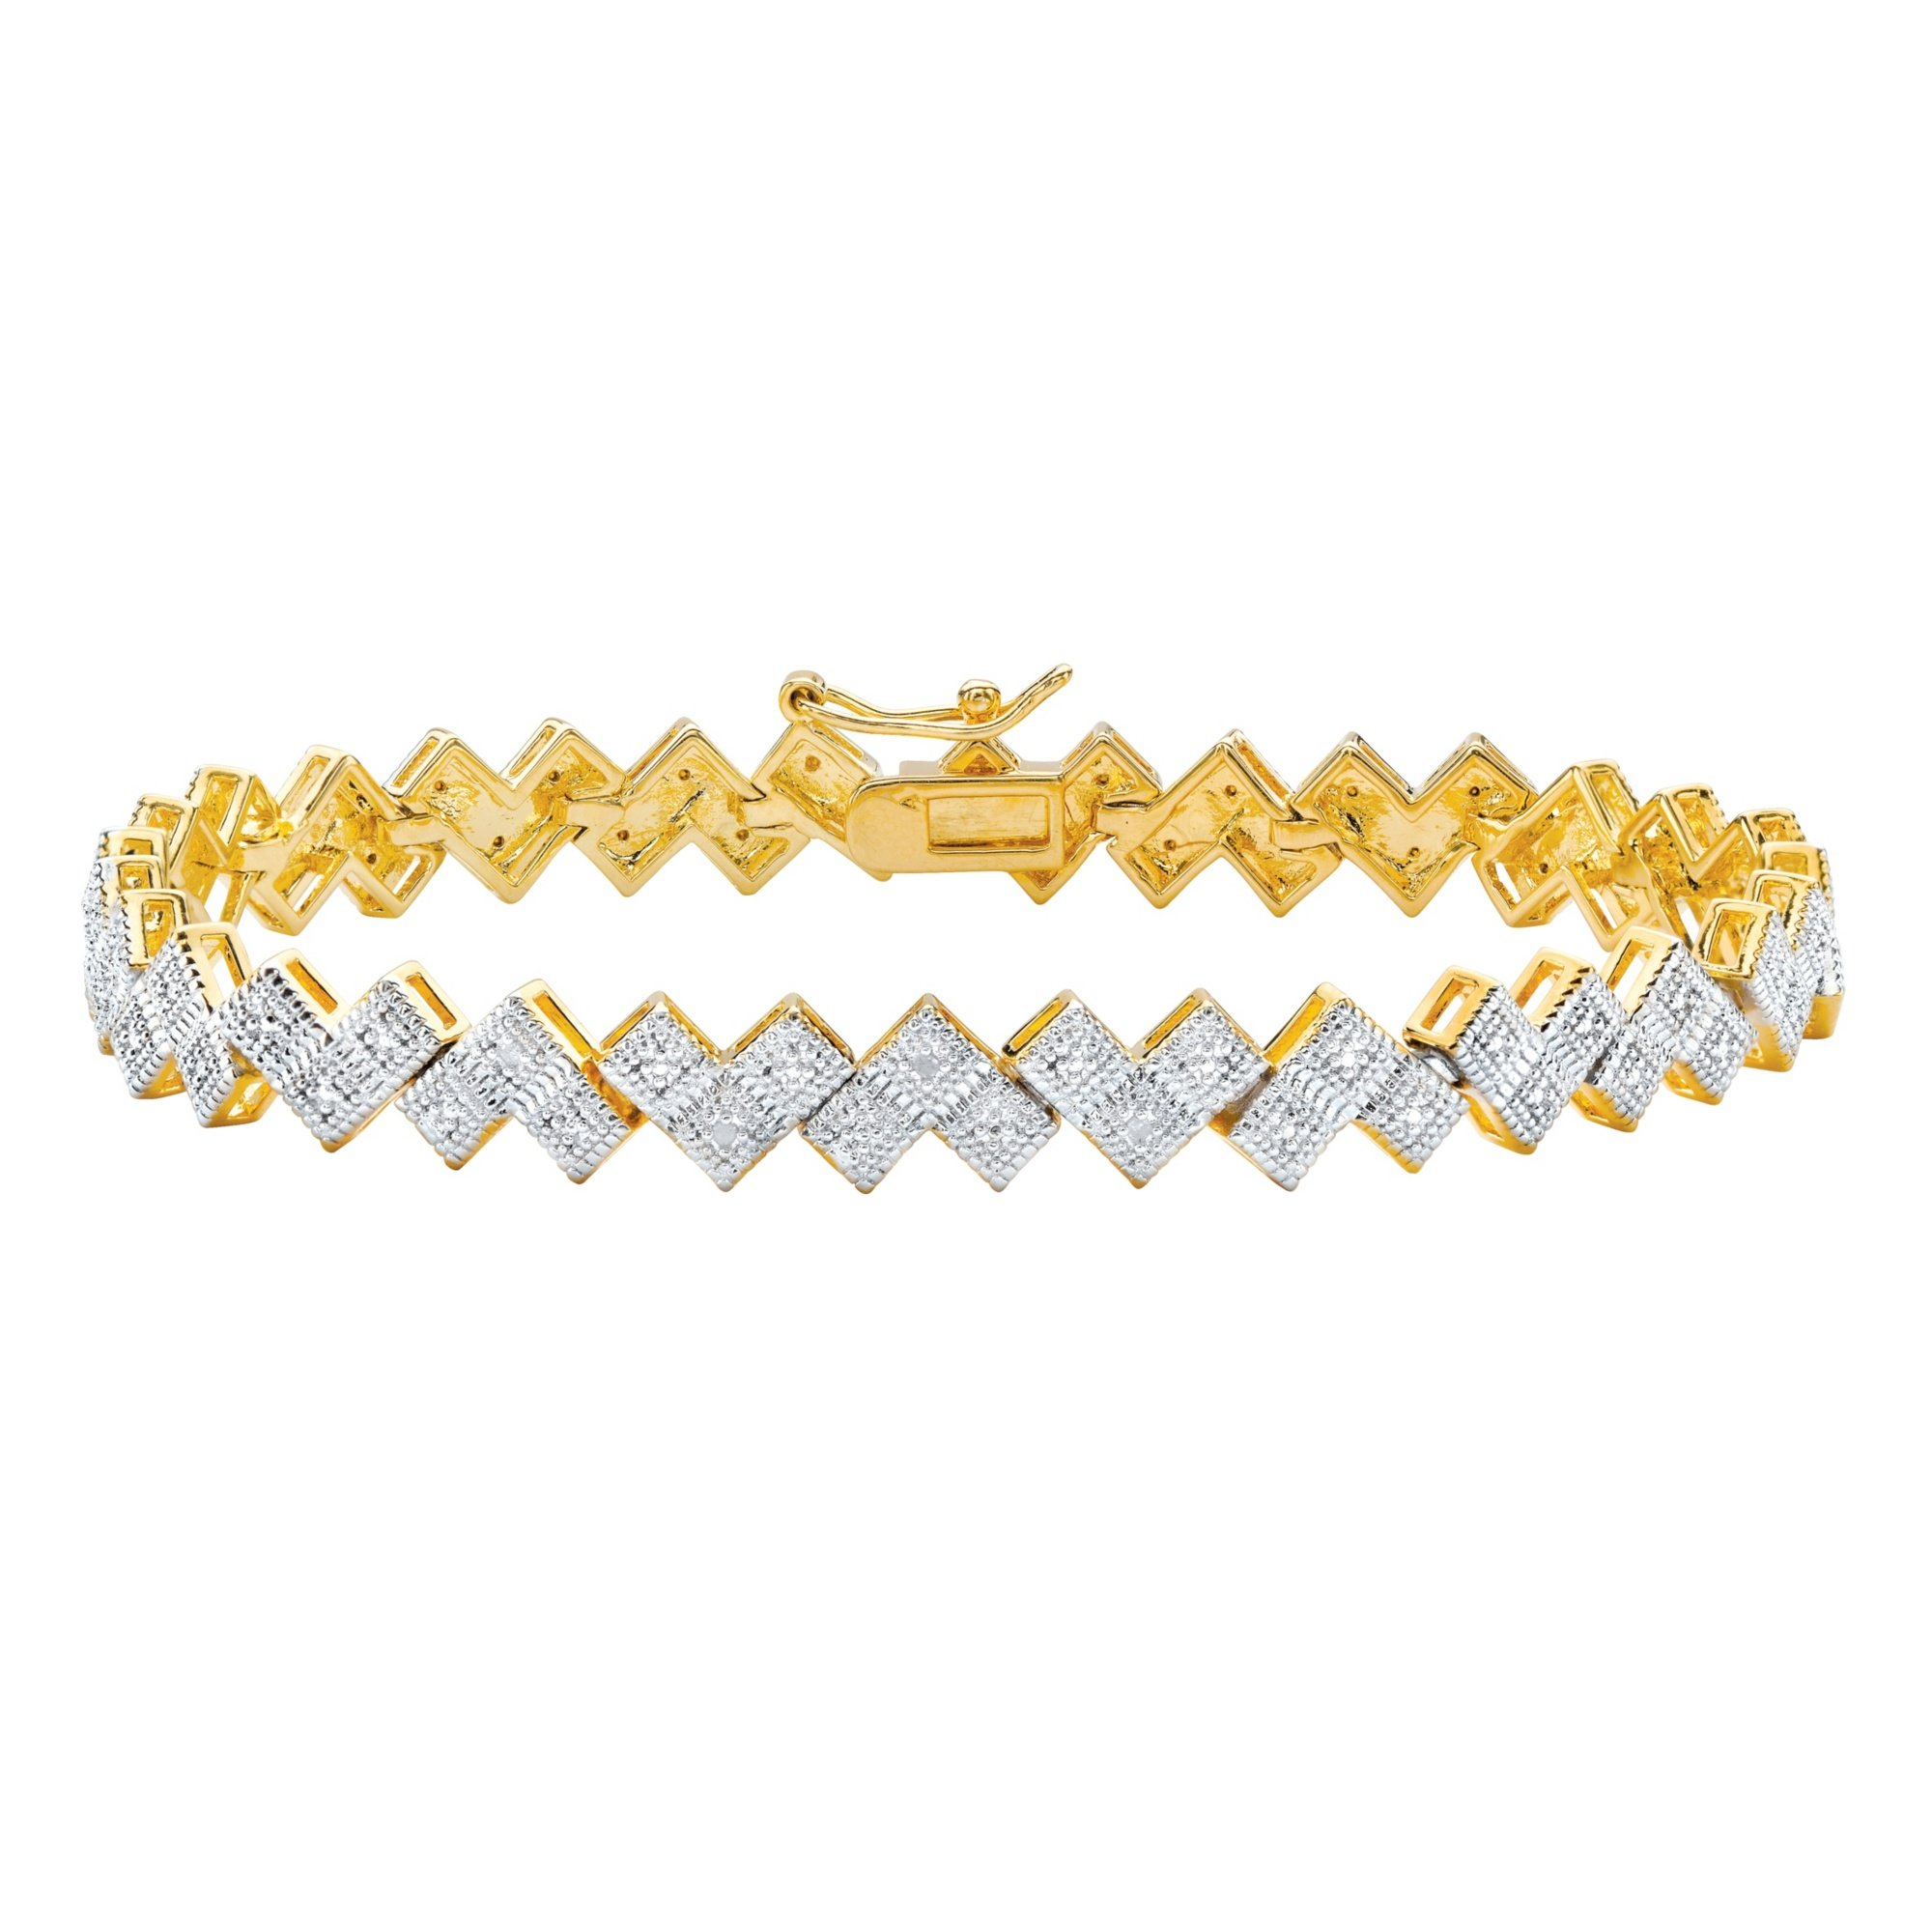 Palm Beach Jewelry White Diamond Accent 14k Gold-Plated Two-Tone Pave-Style Bar-Link Bracelet 7.5''